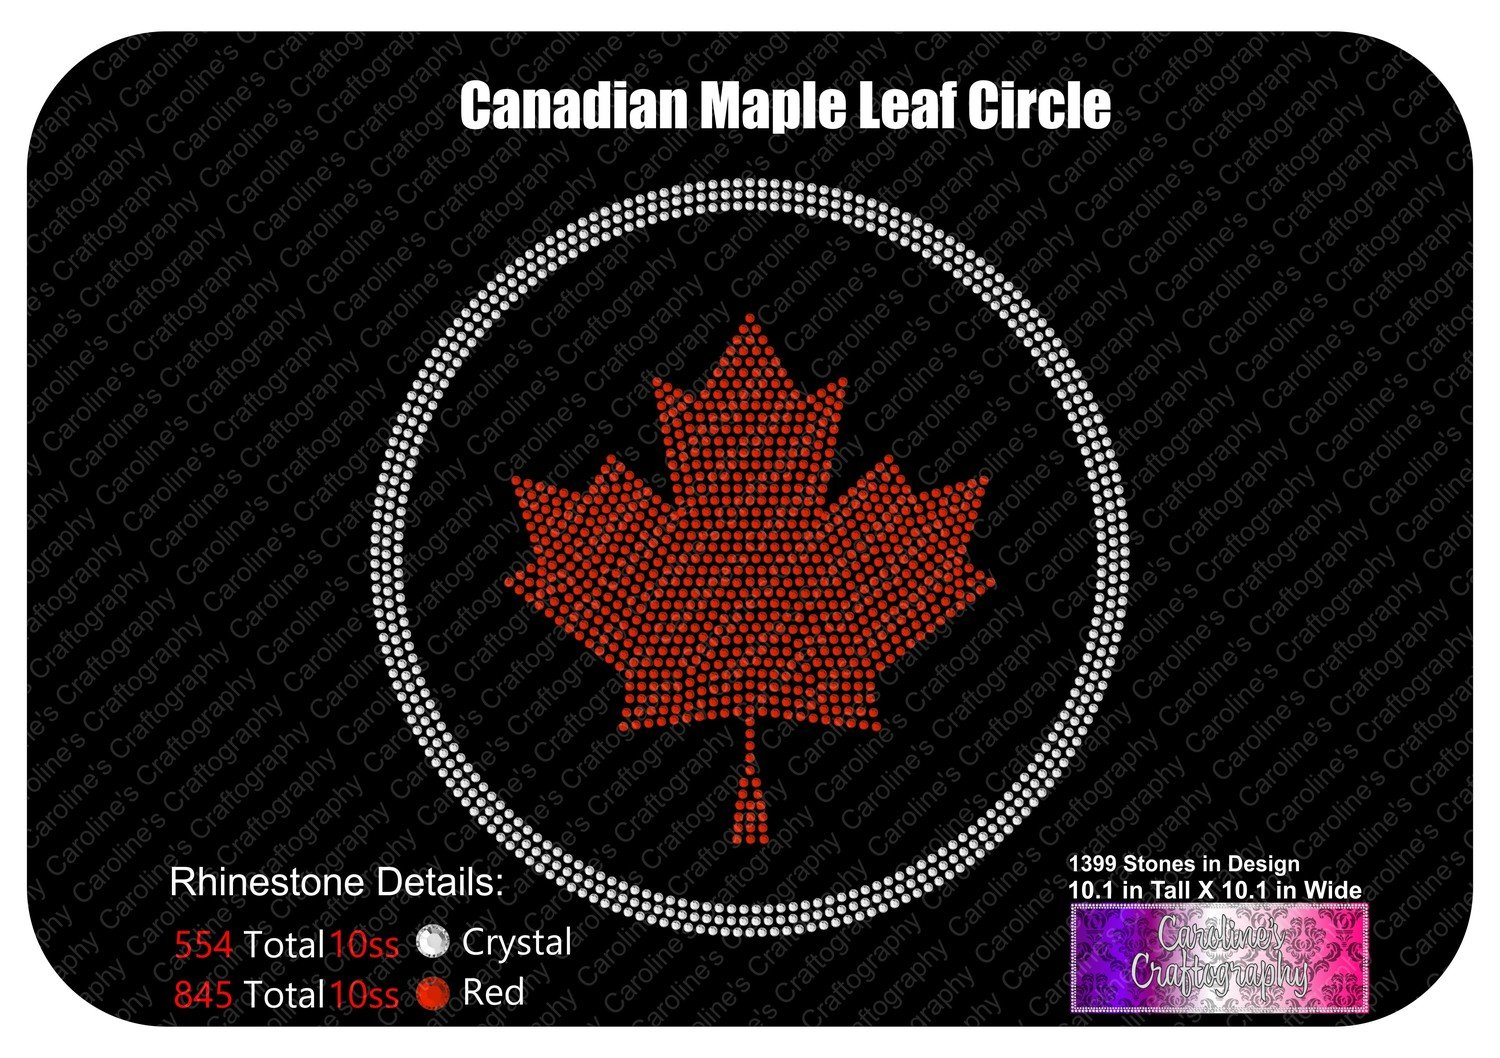 Canadian Maple Leaf Circle